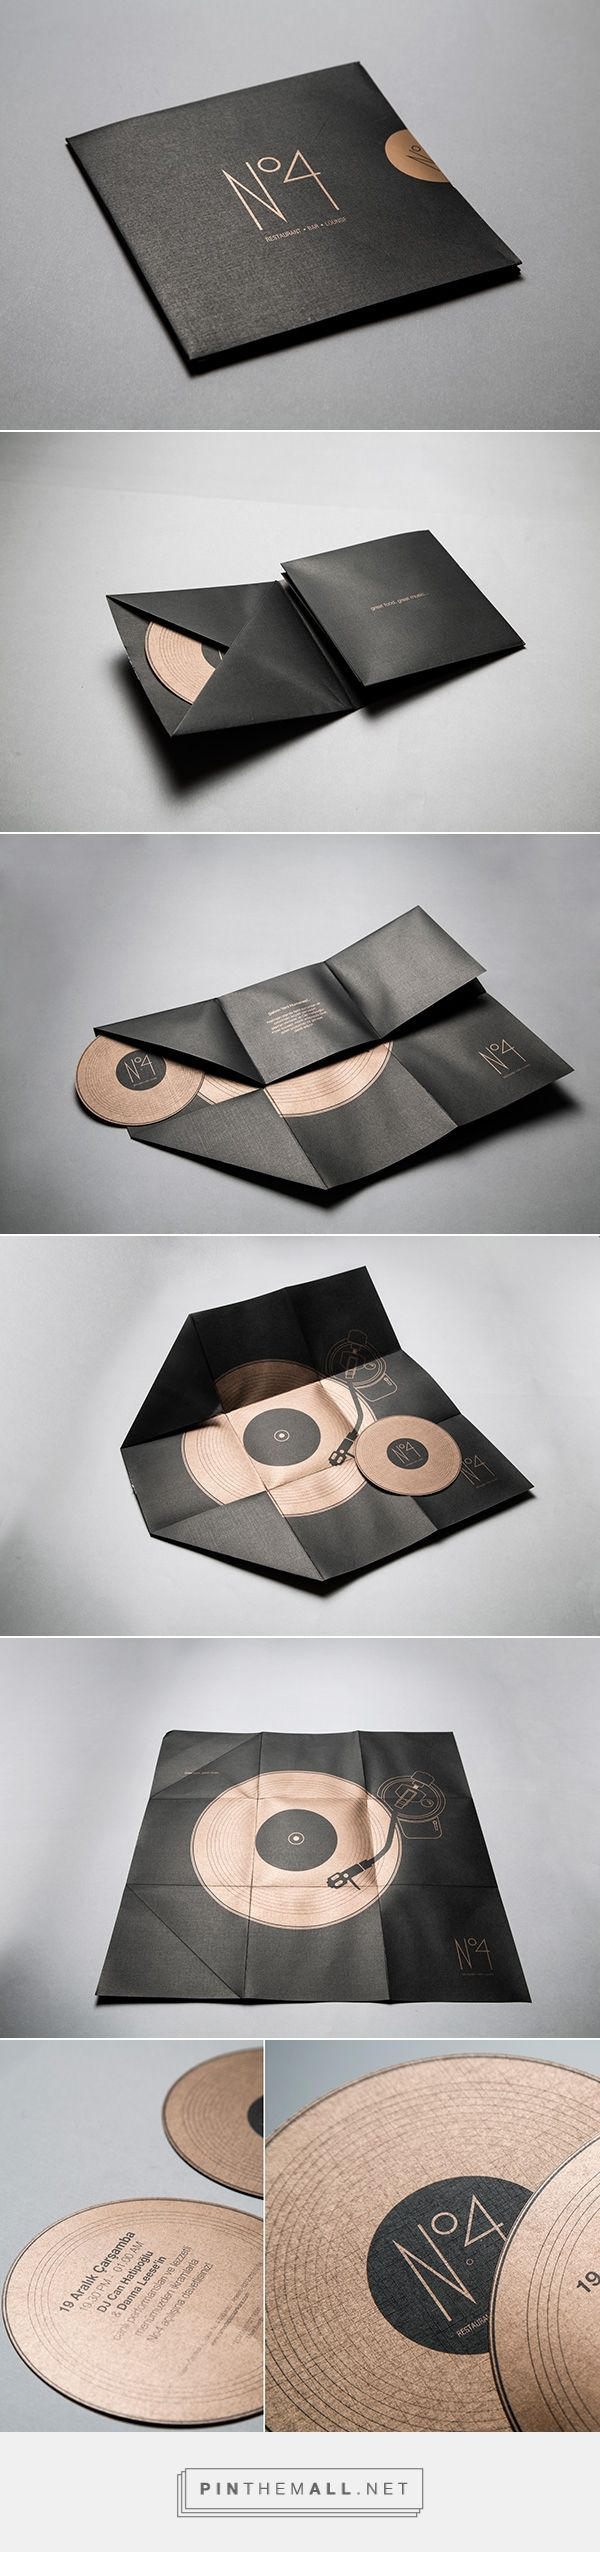 No4, Invitaion & Direct Mailing by Ufuk Ergun. If you want to customize a good-looking CD packaging, visit www.unifiedmanufacturing.com.